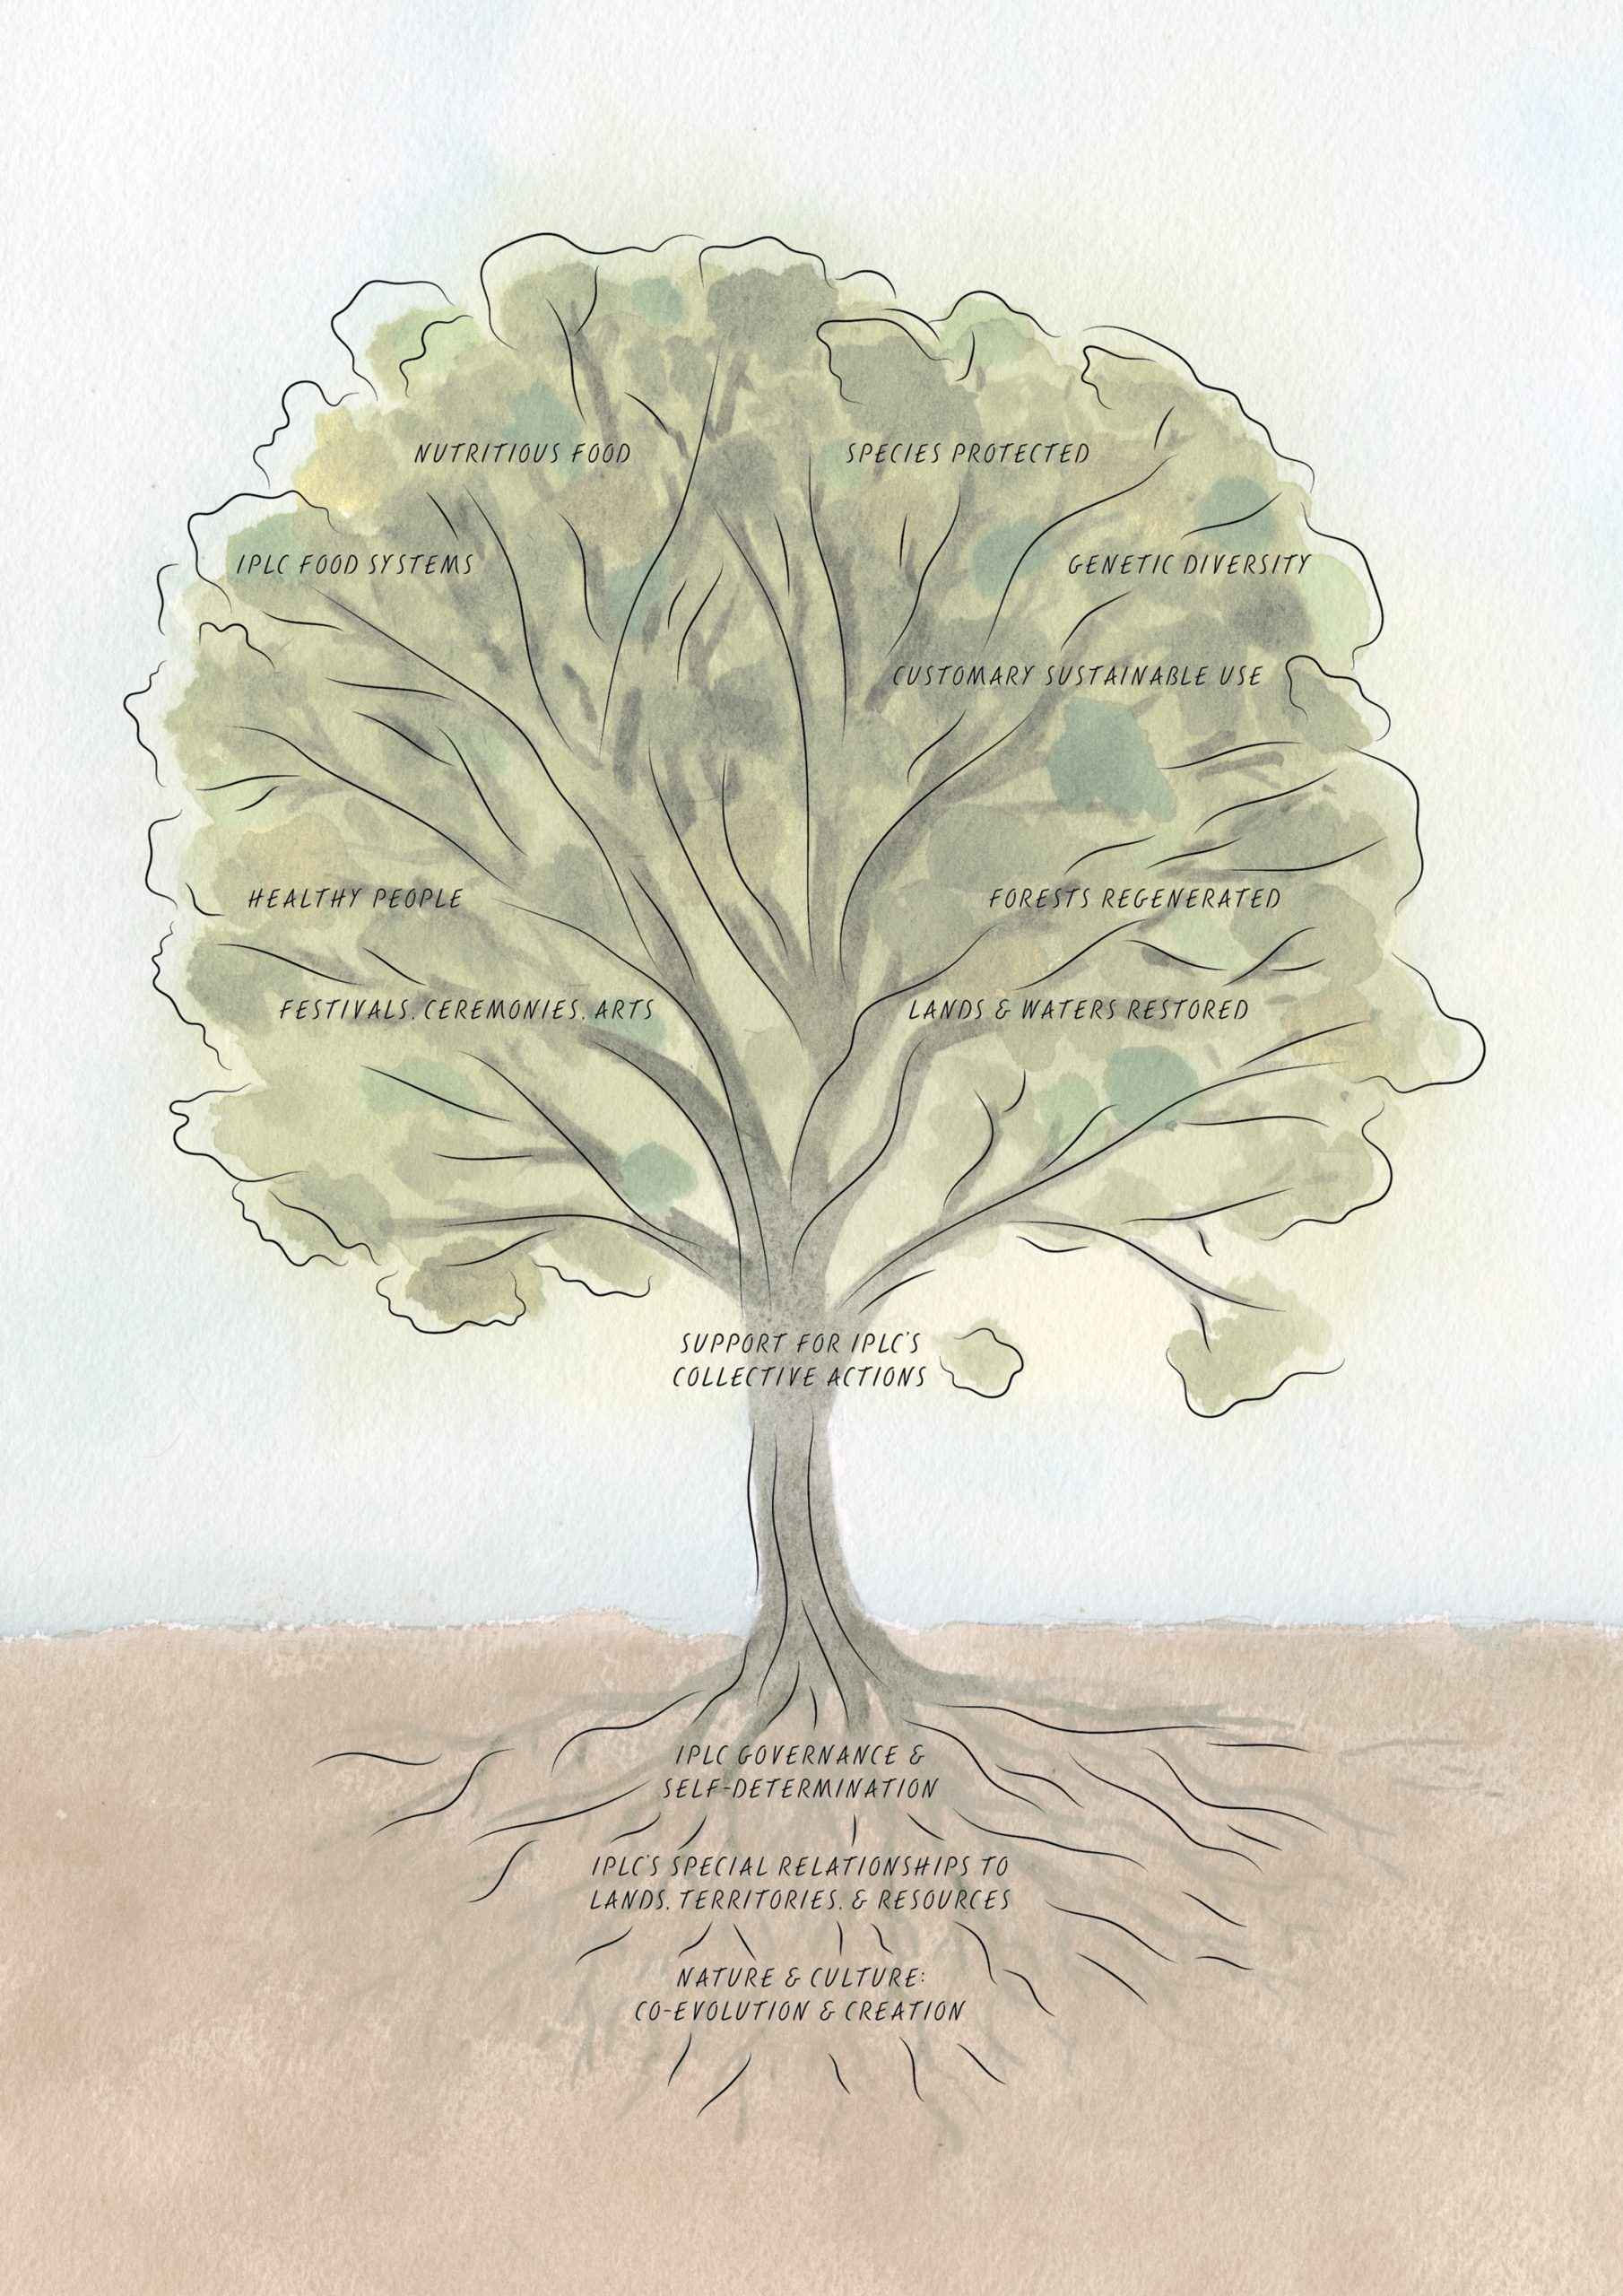 IPLC solution tree for the renewal of nature and cultures. Credit: artwork by Agnès Stienne.